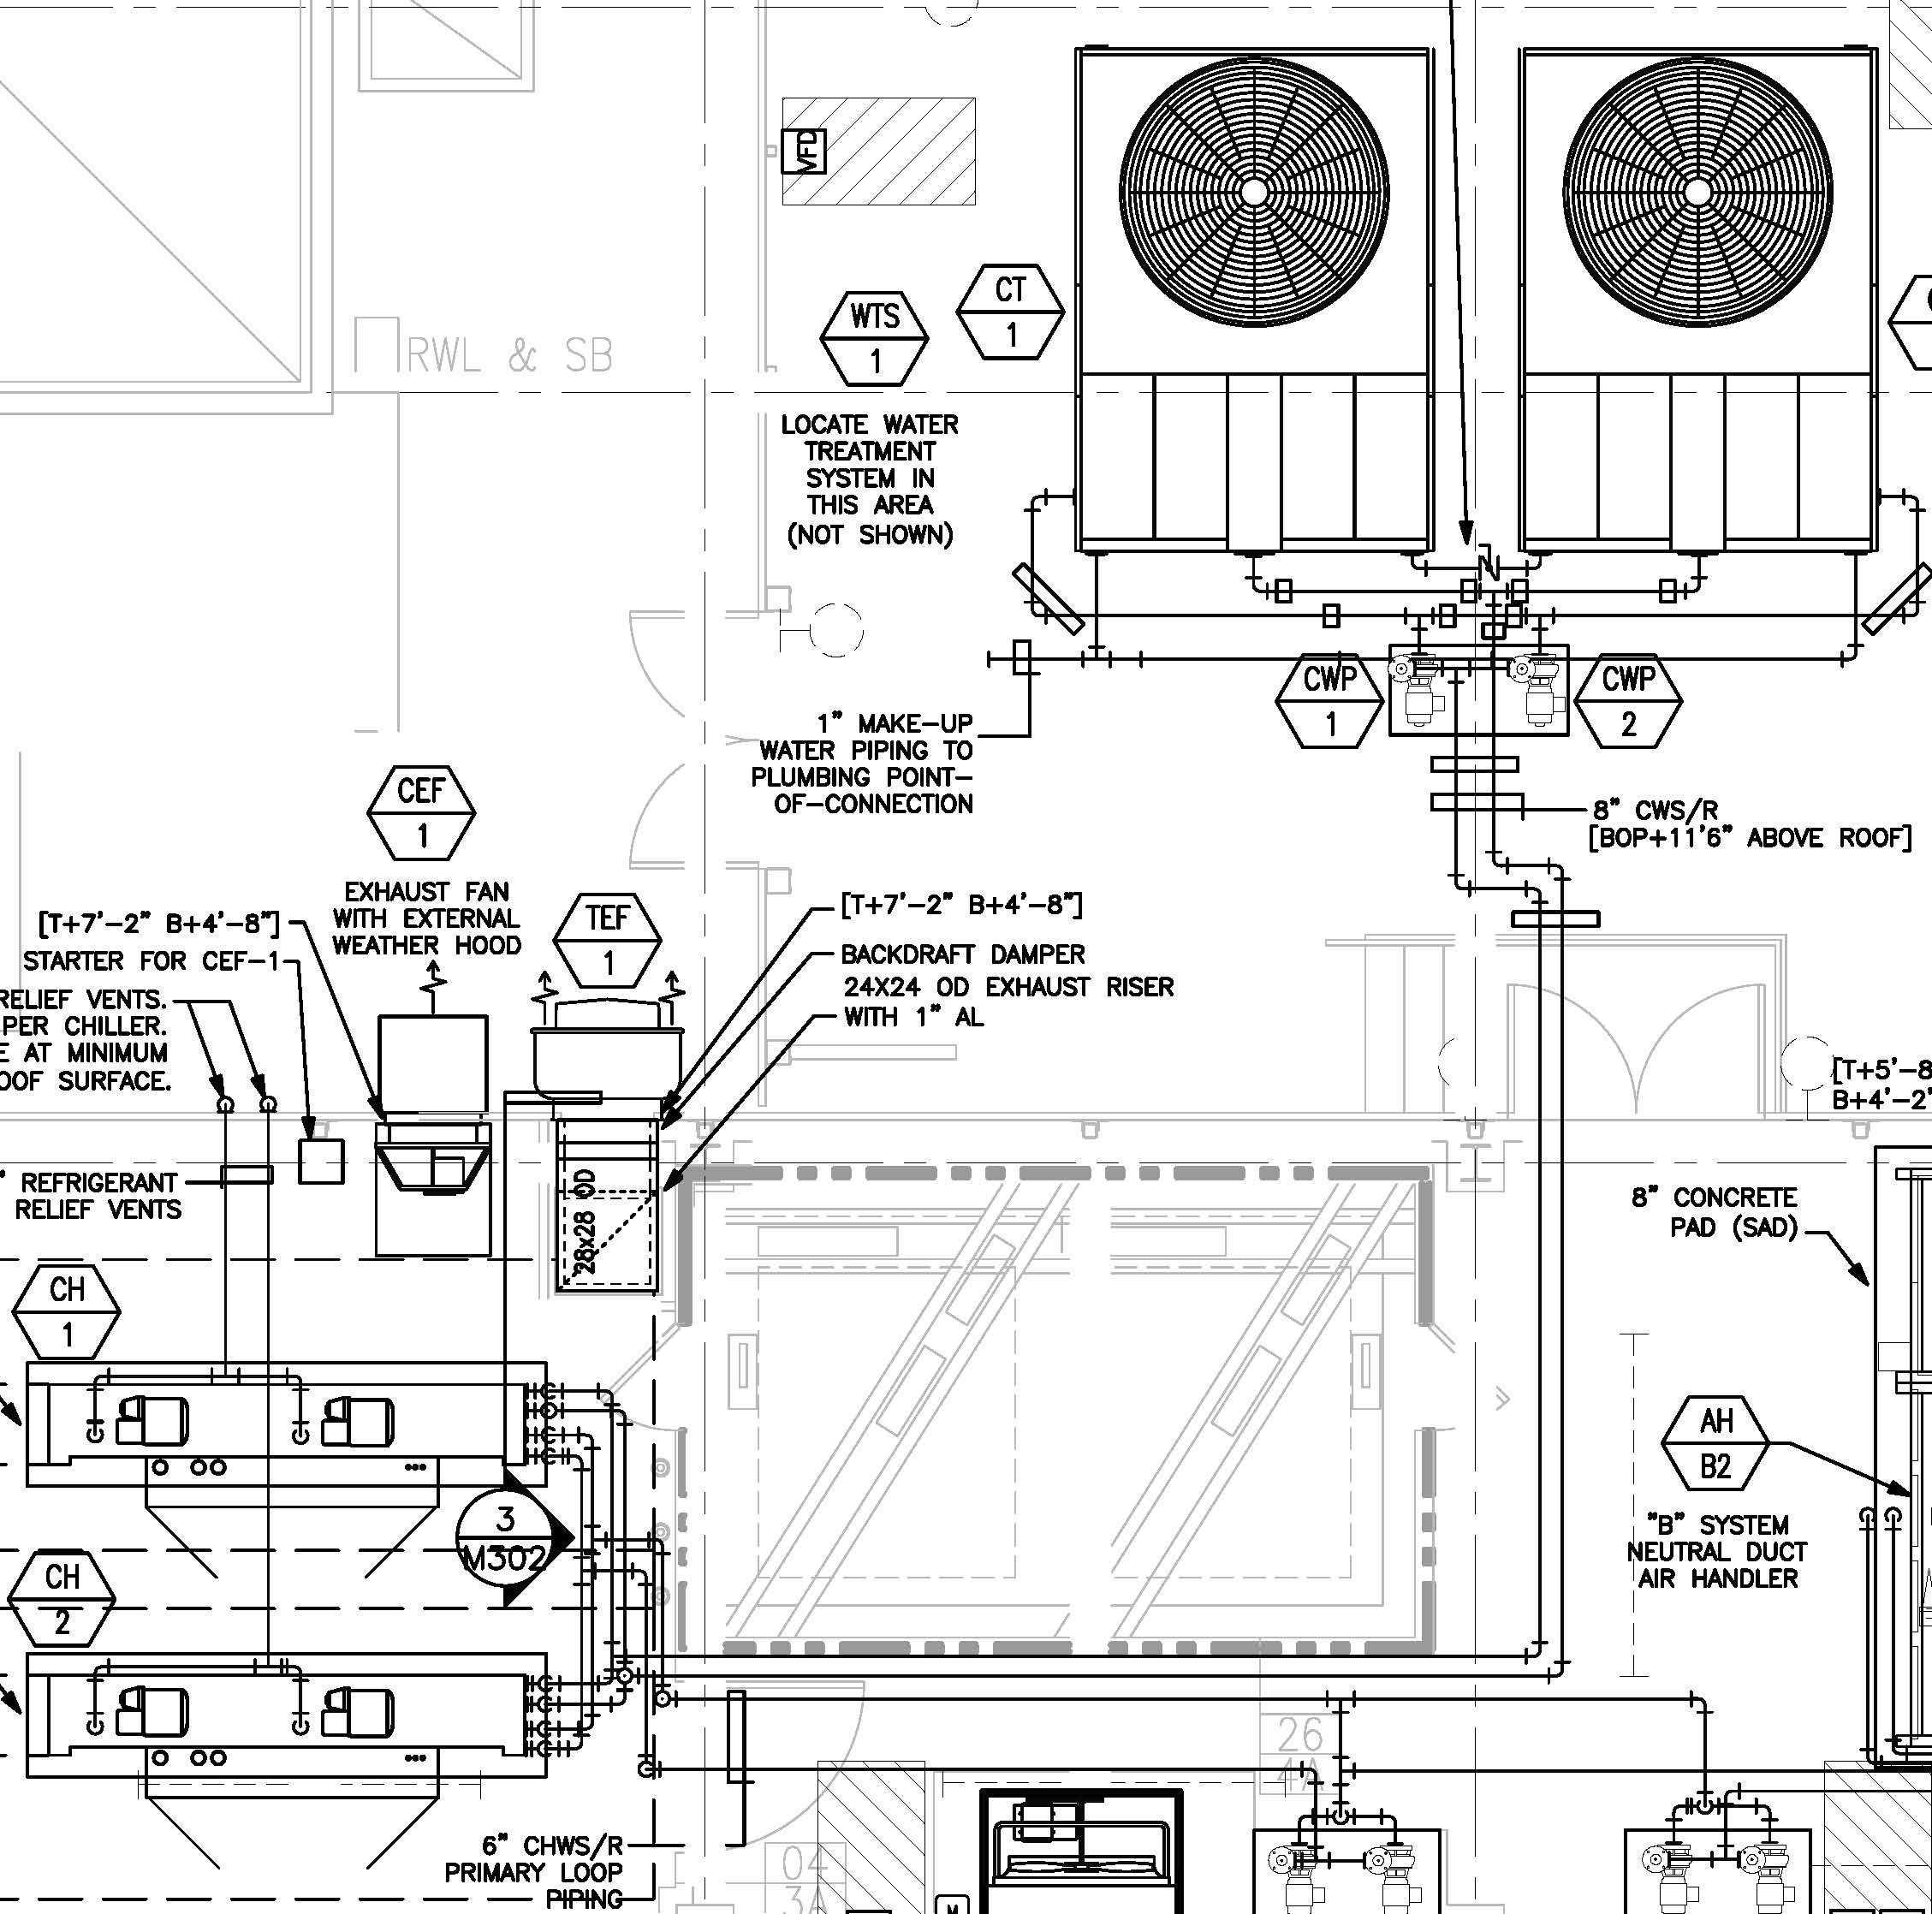 ac unit wiring diagram Download-Wiring Diagram for York Air Conditioner Best Package Air Conditioning Unit Wiring Diagram New Unique York 12-k